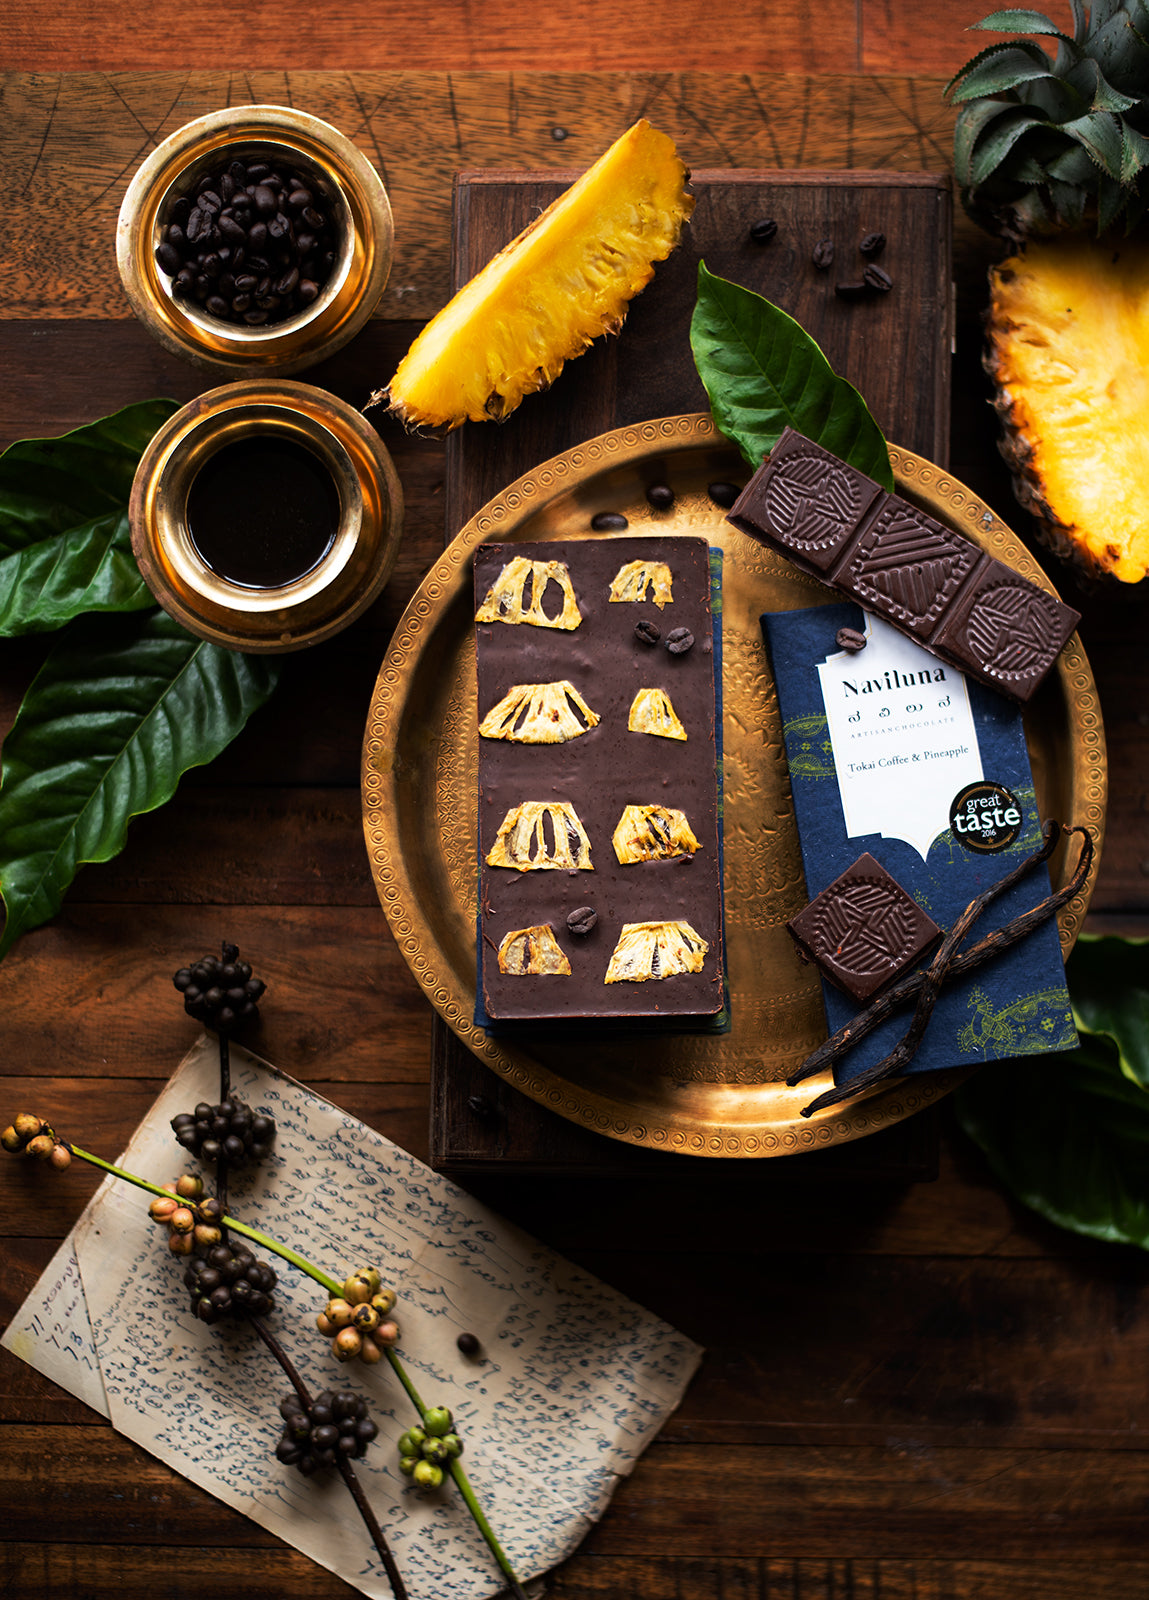 NAVILUNA Tokai Coffee & Pineapple Chocolate Bar